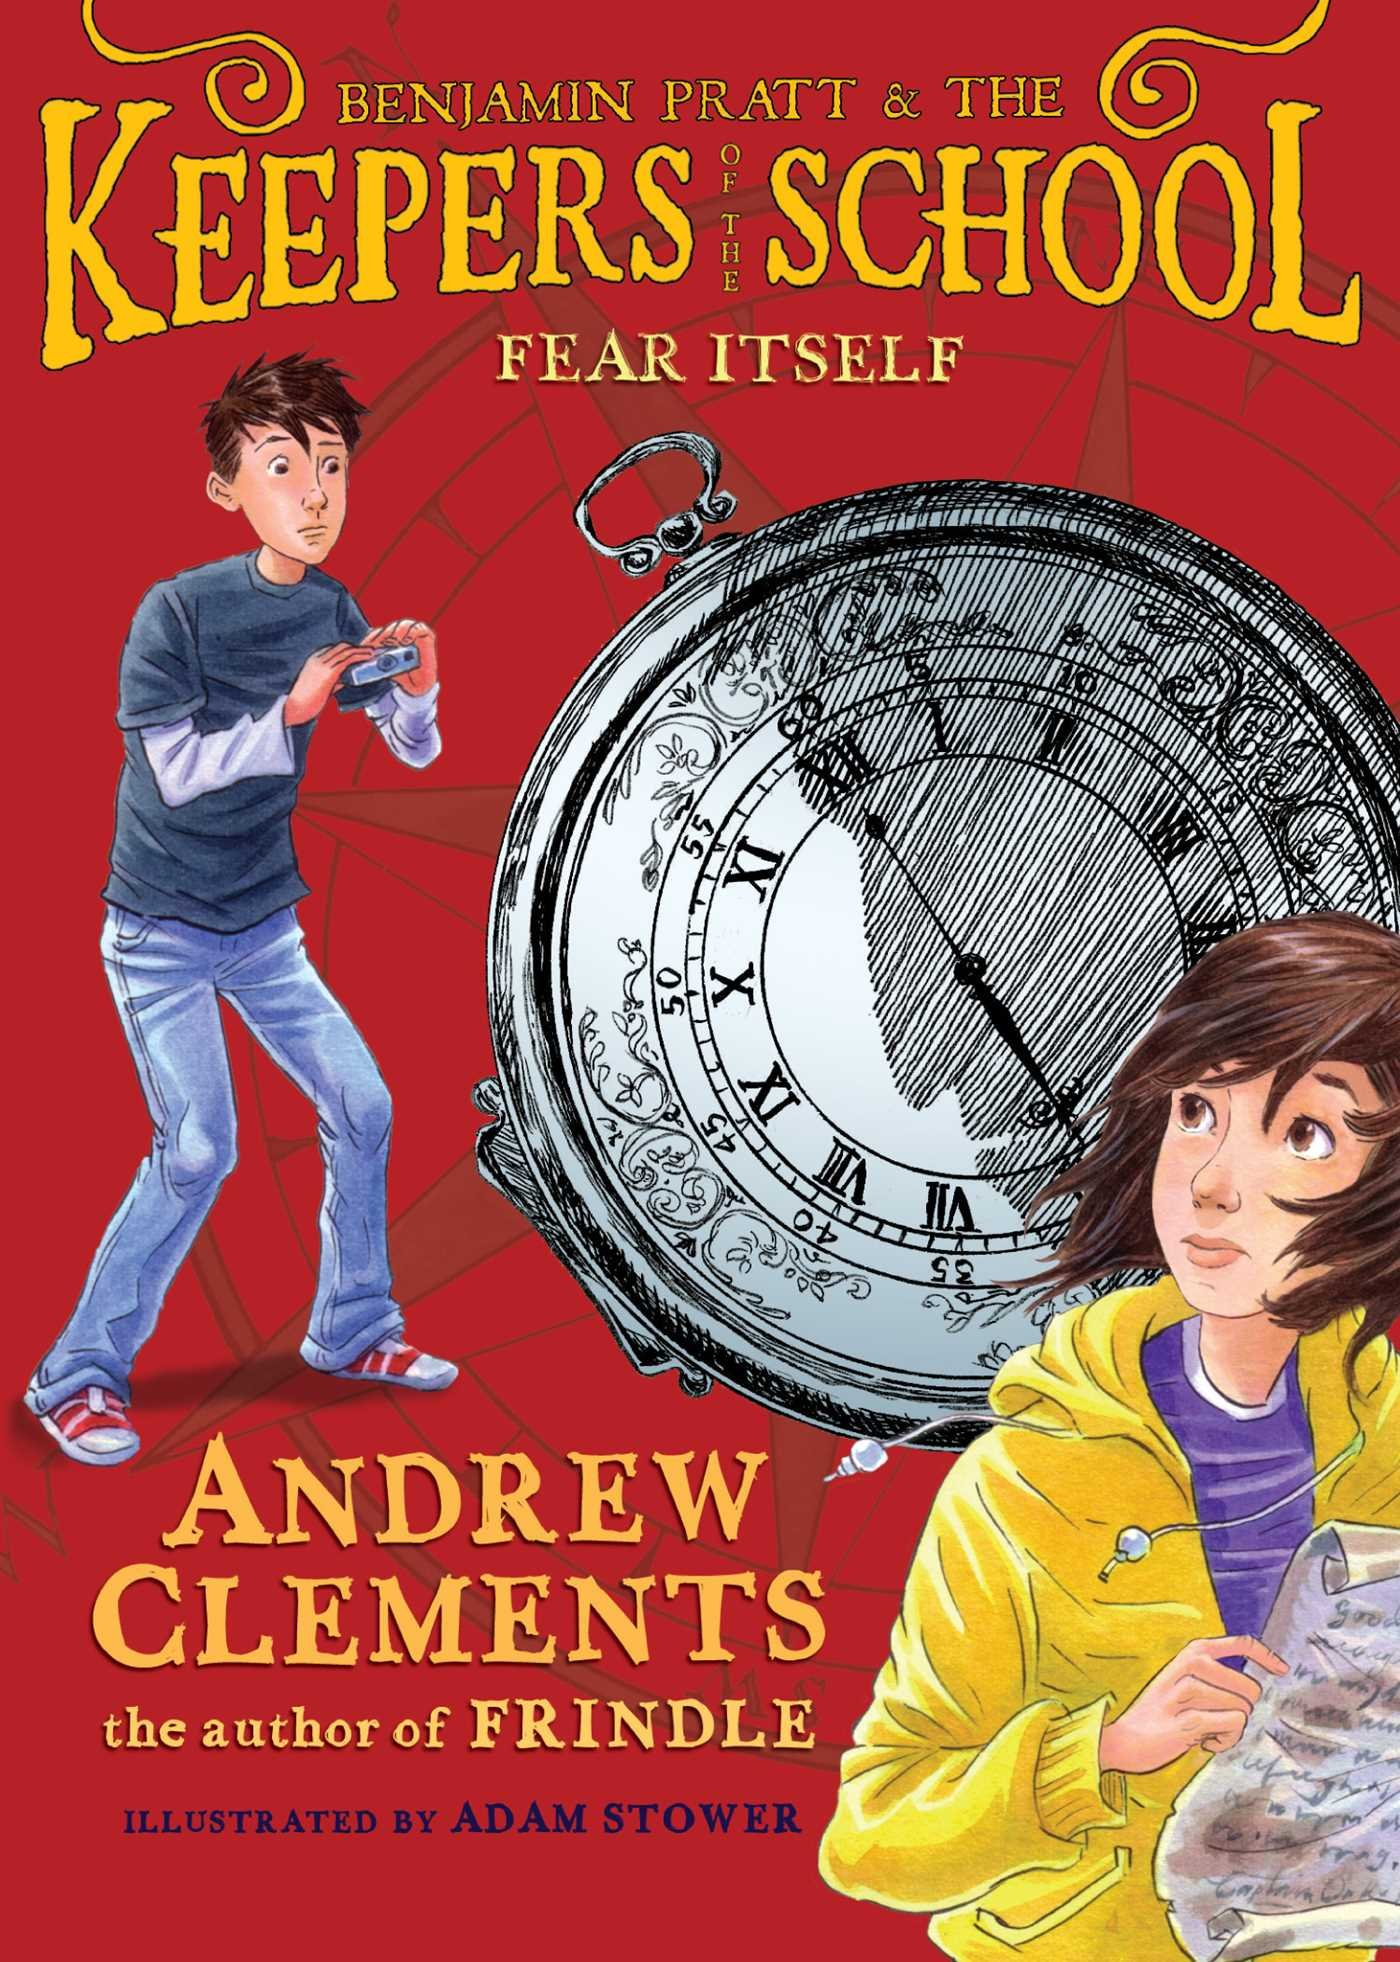 andrew-clements-keepers-school-fear-itself.jpg